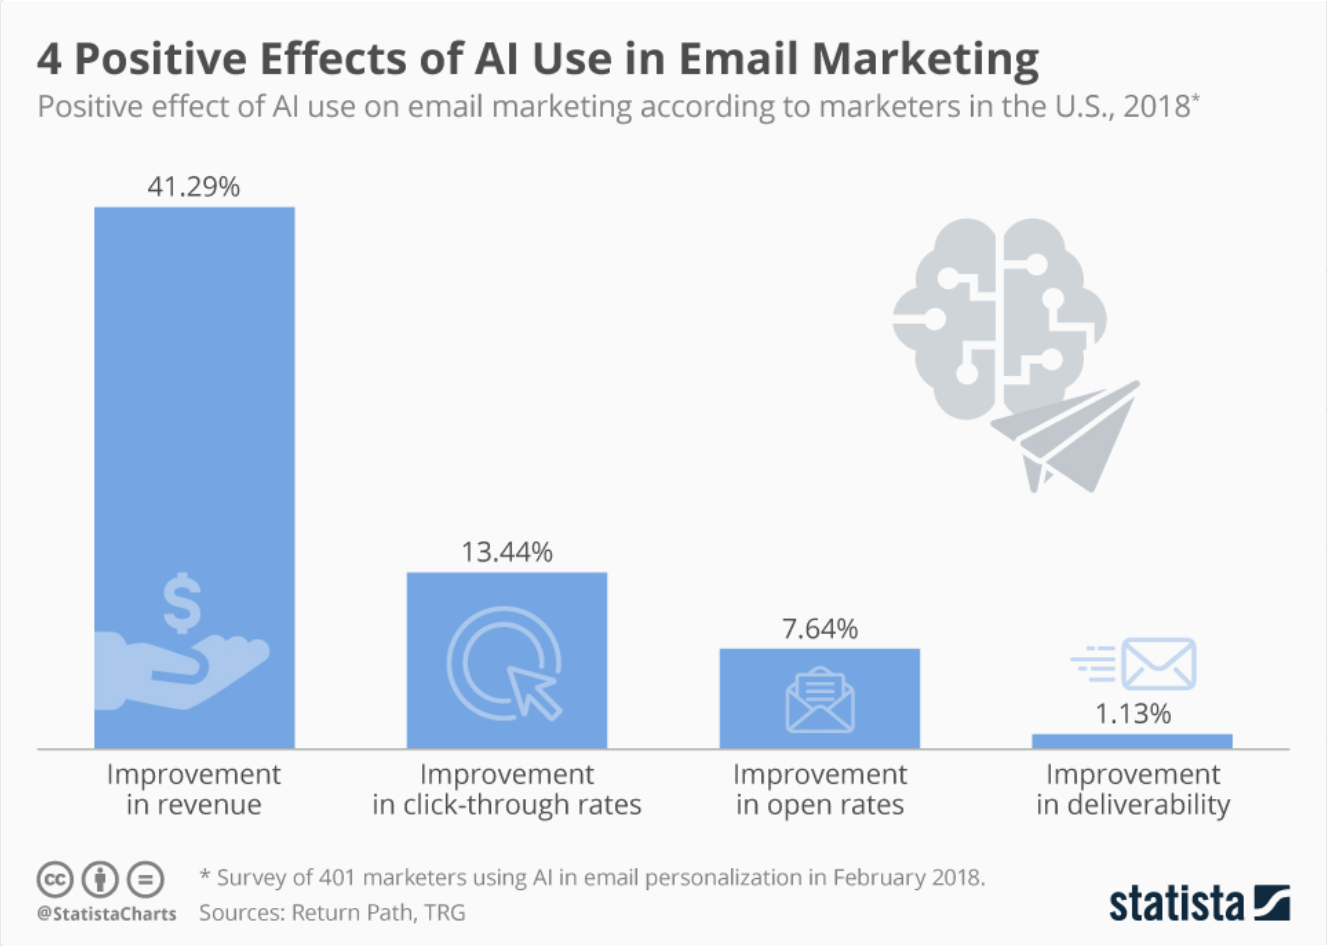 Positive effects of AI in email marketing